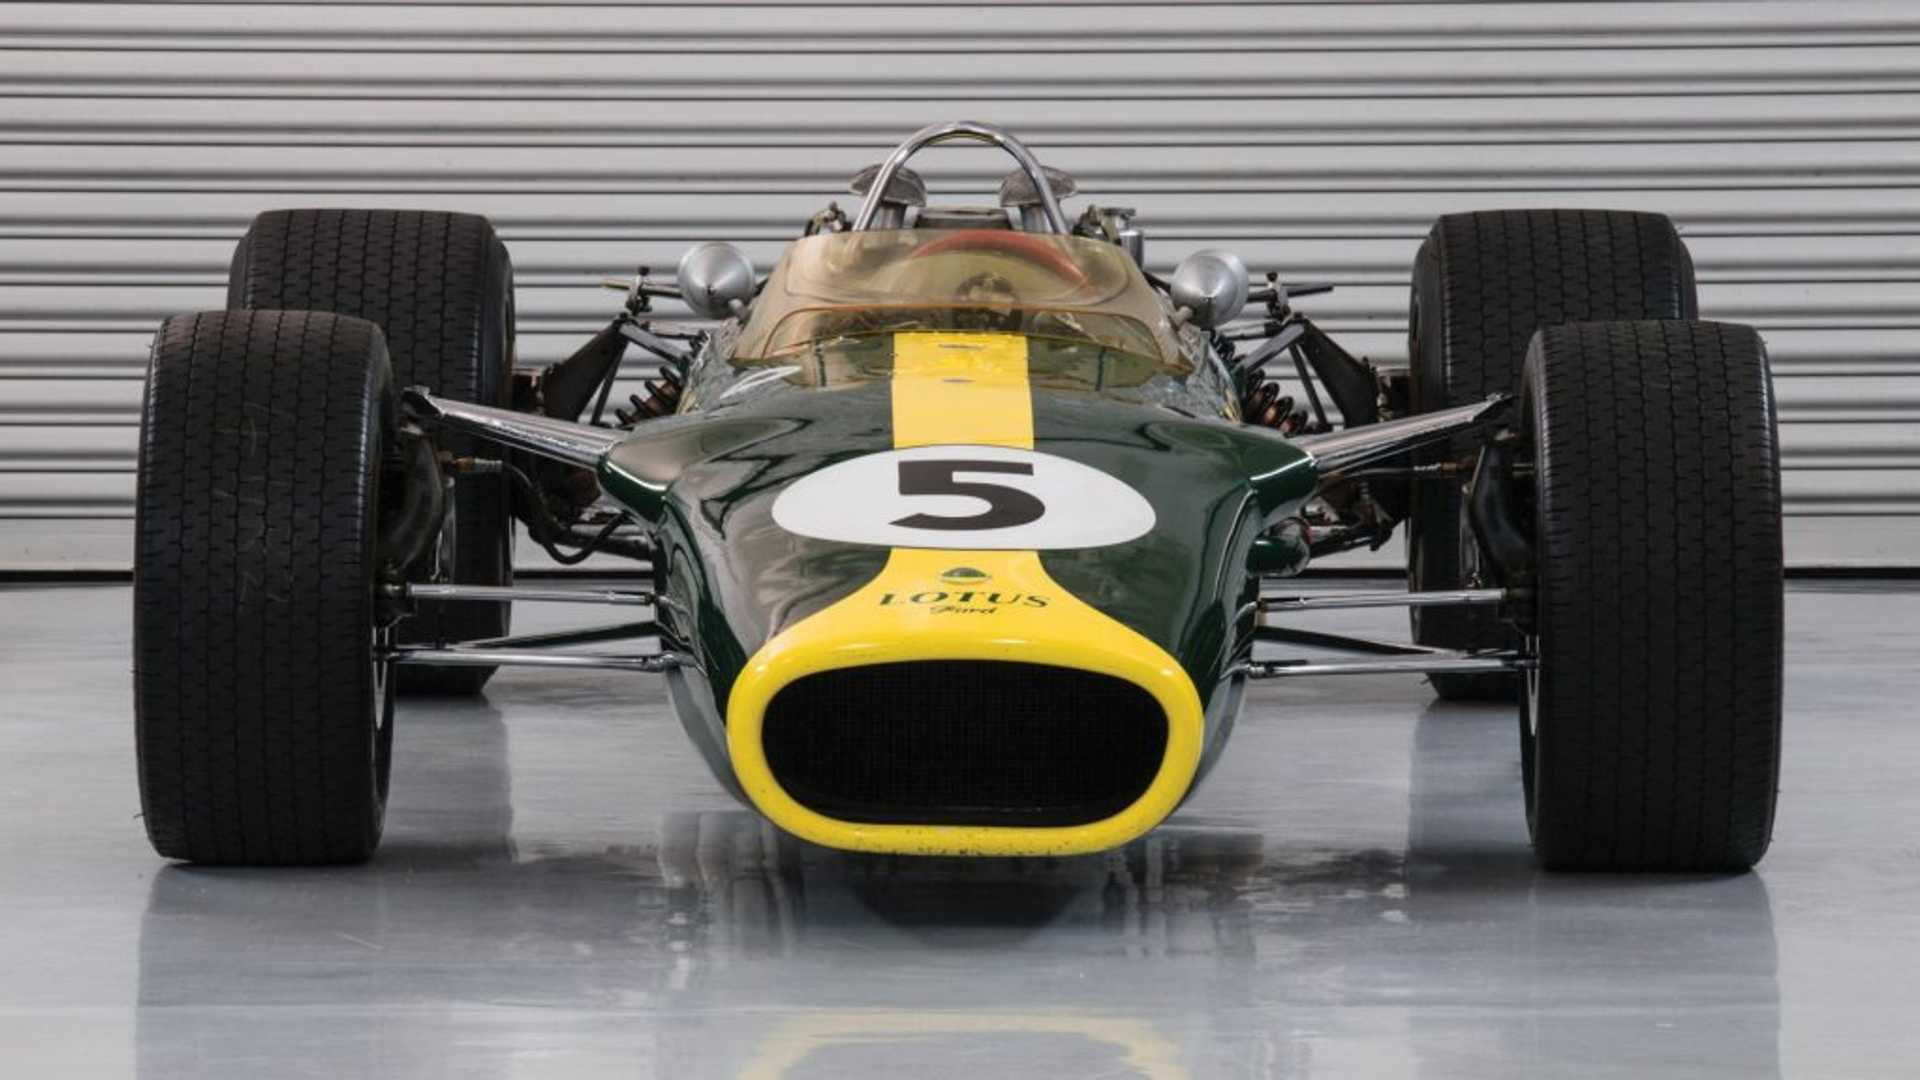 "[""FL Car Museum Displays GP-Winning 1967 Lotus Type 49 F1 Racer""]"